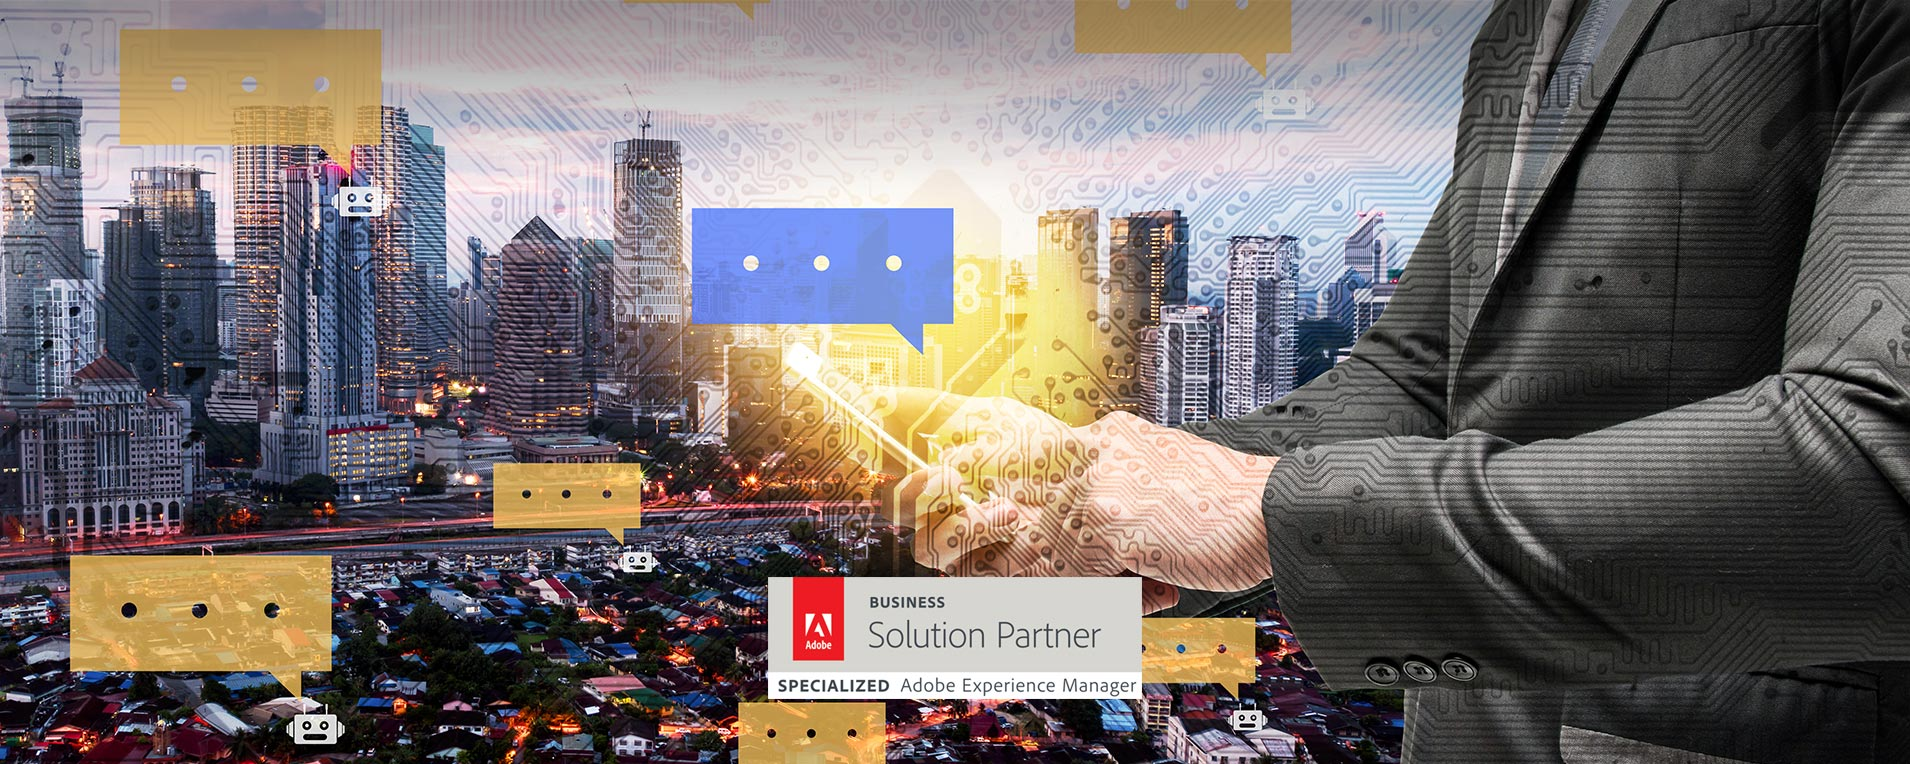 Don't miss our chatbot demos at Adobe Summit 2018